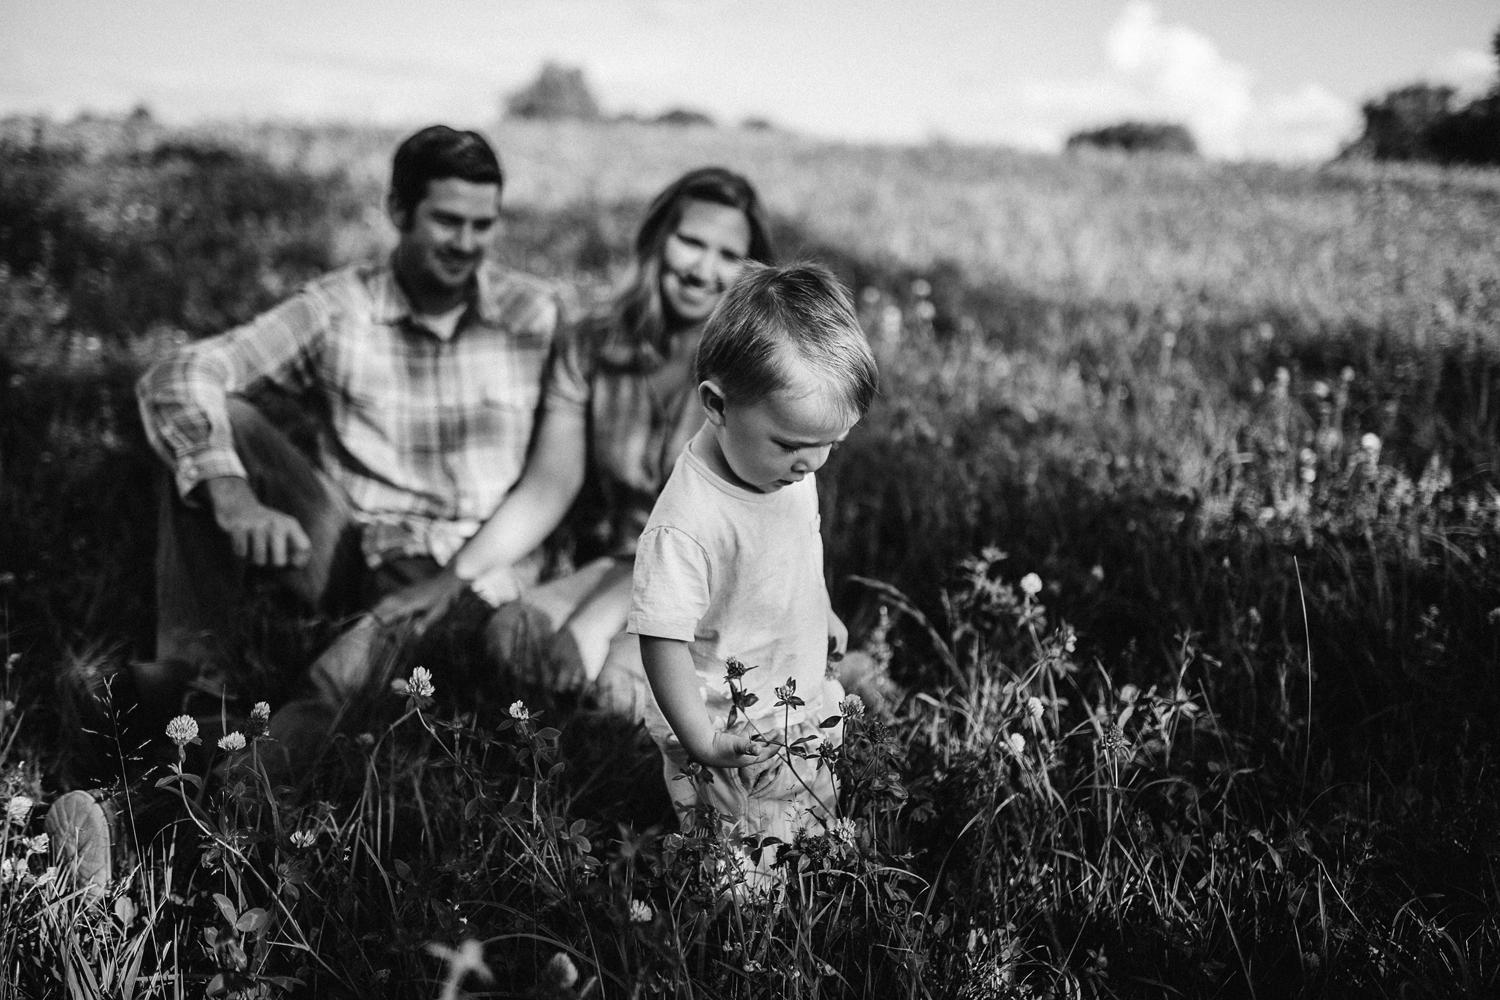 perth lanark county family outdoor photographer - kerry ford photography-029.jpg